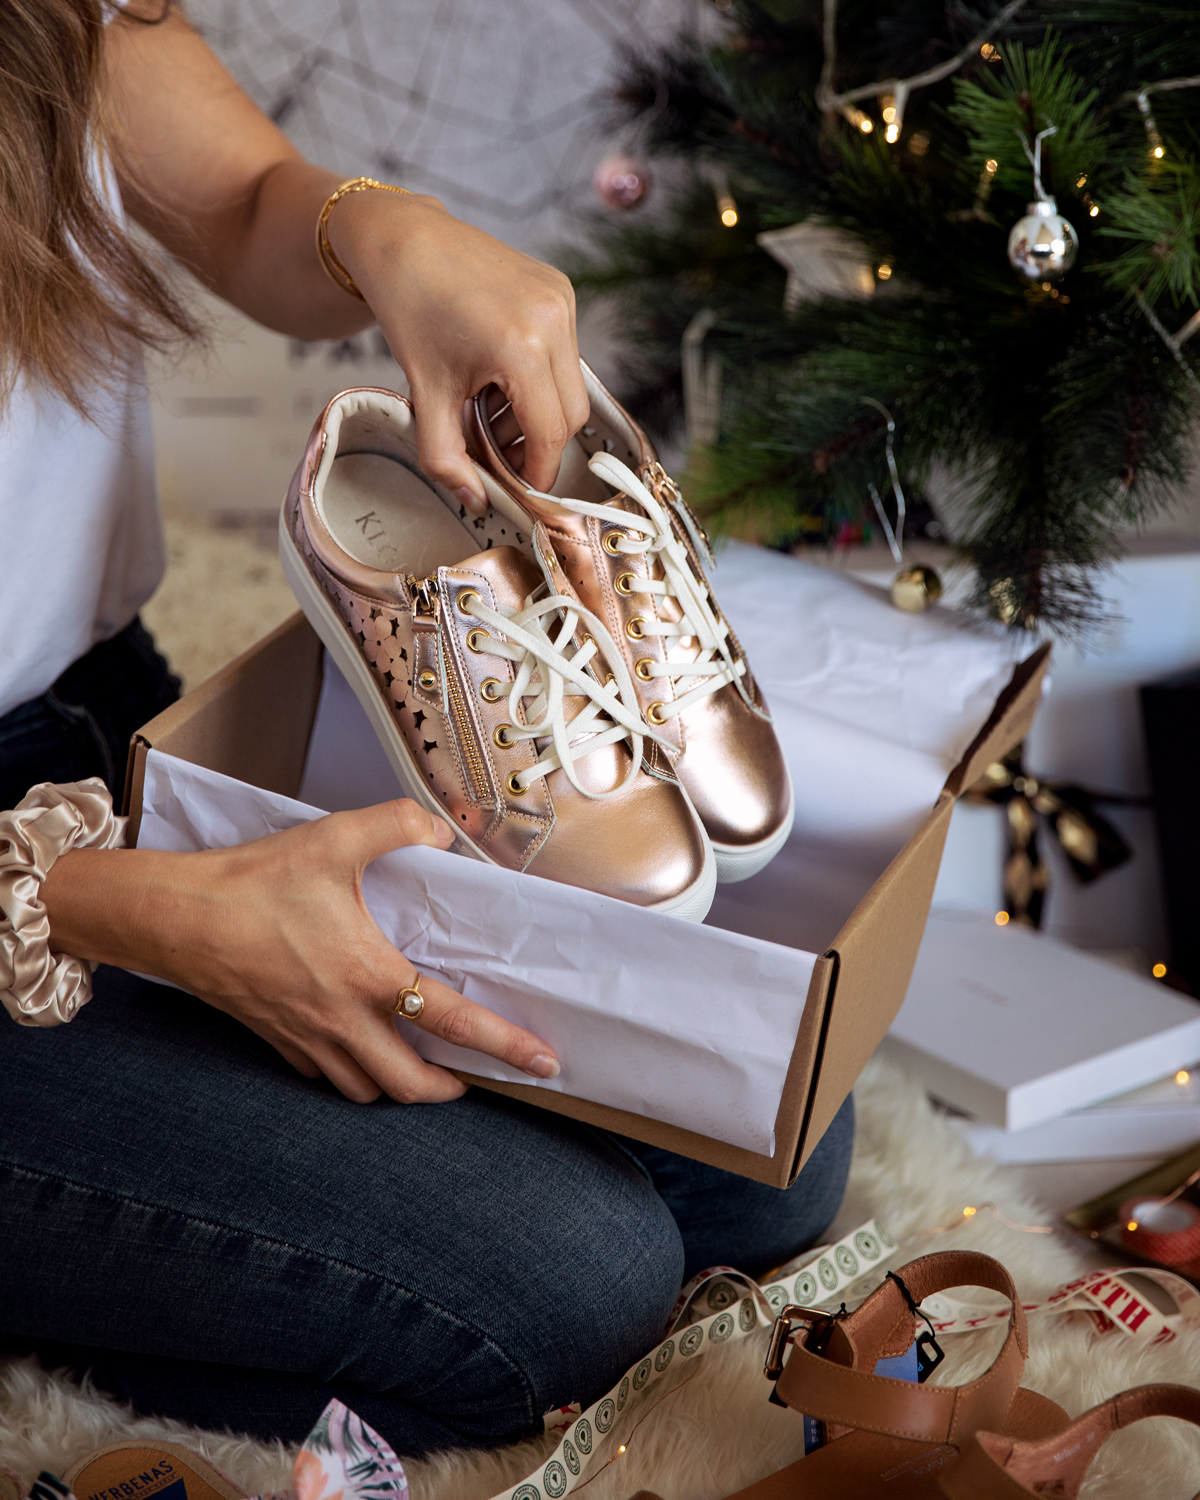 2018 Christmas gift guide Inspiring Wit blog featuring Perth gift ideas Paul Carroll shoes